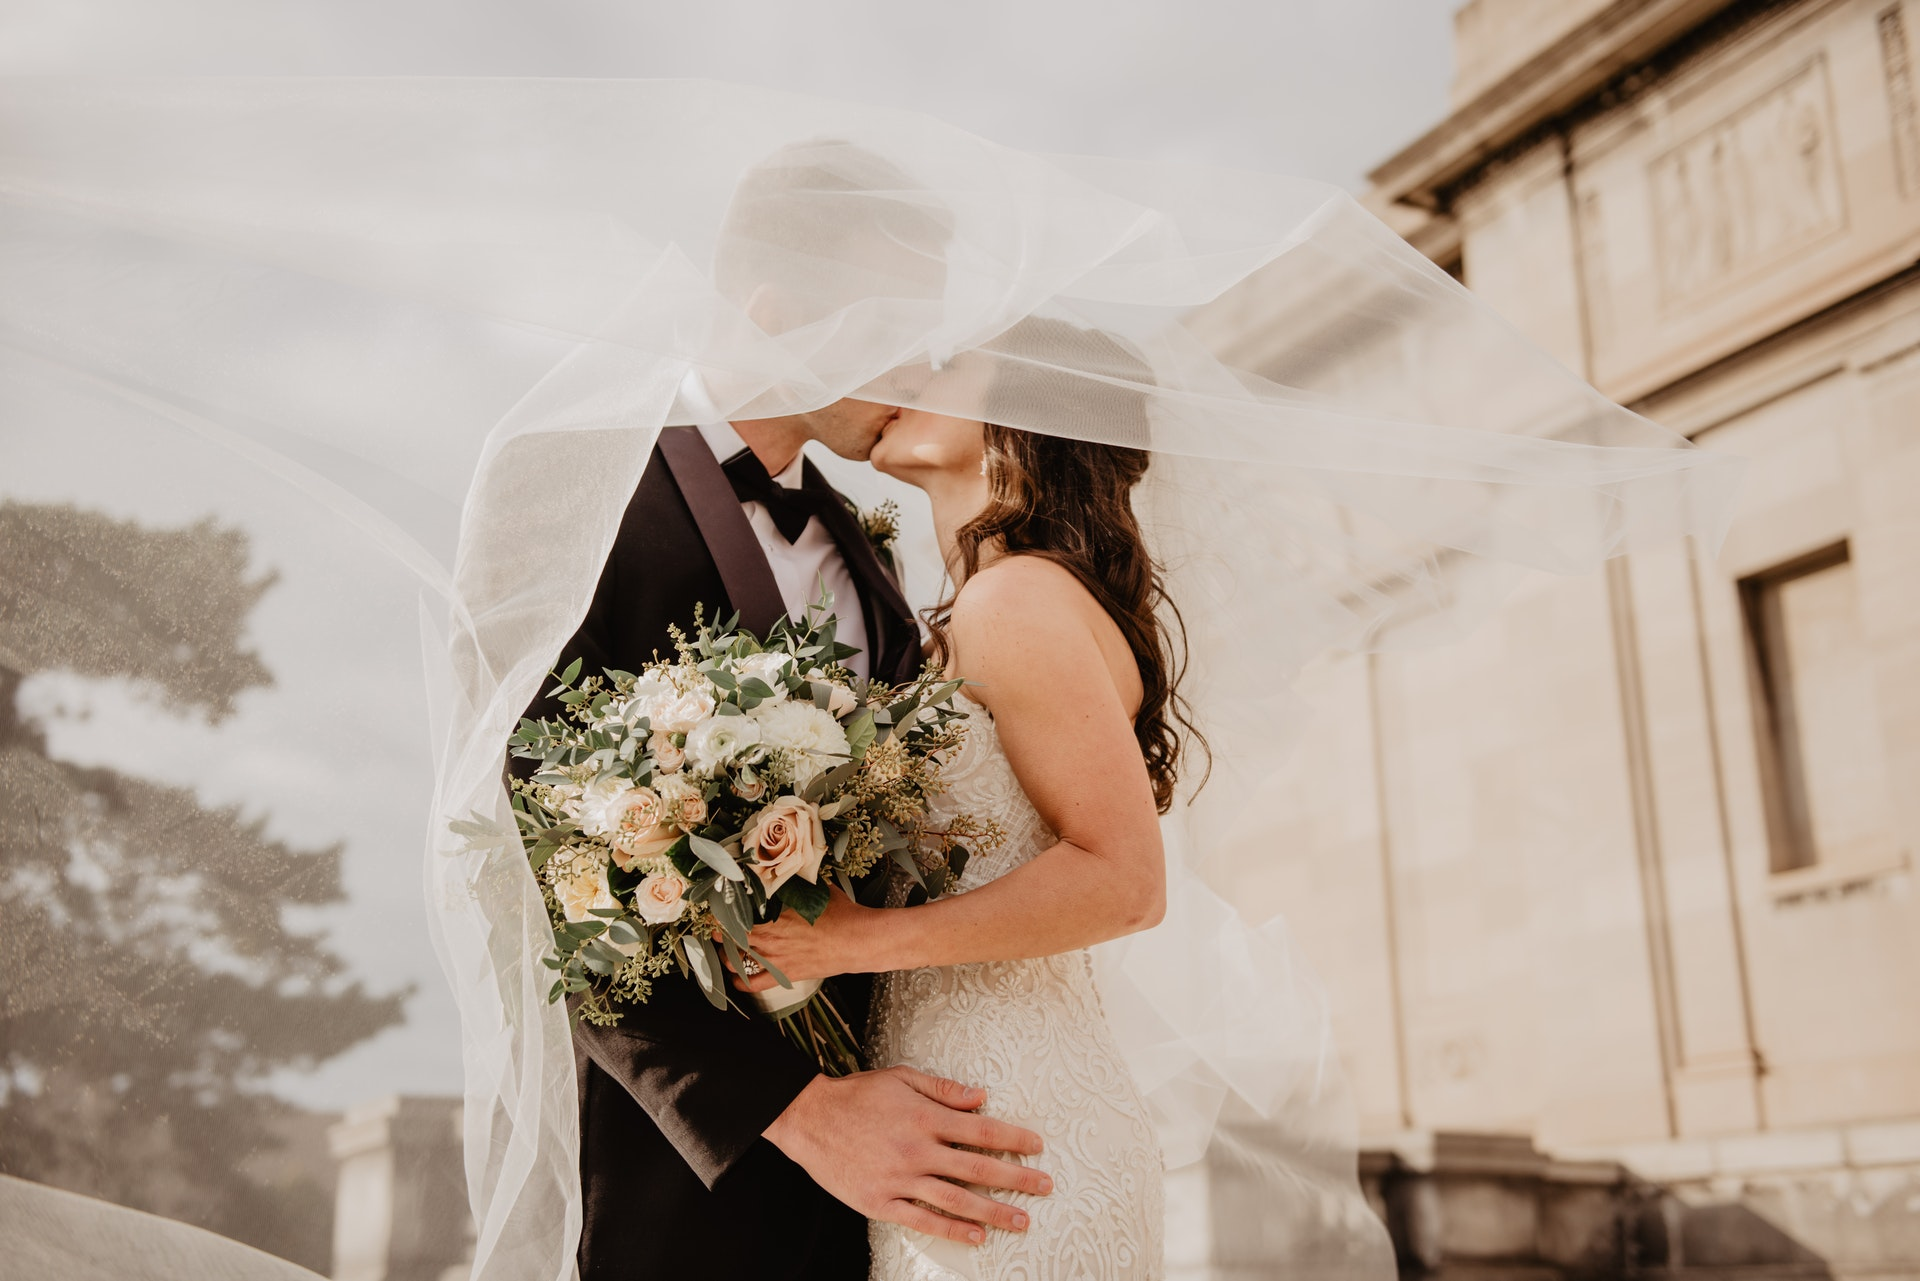 What Is the Average Cost of a Venue for a Wedding?